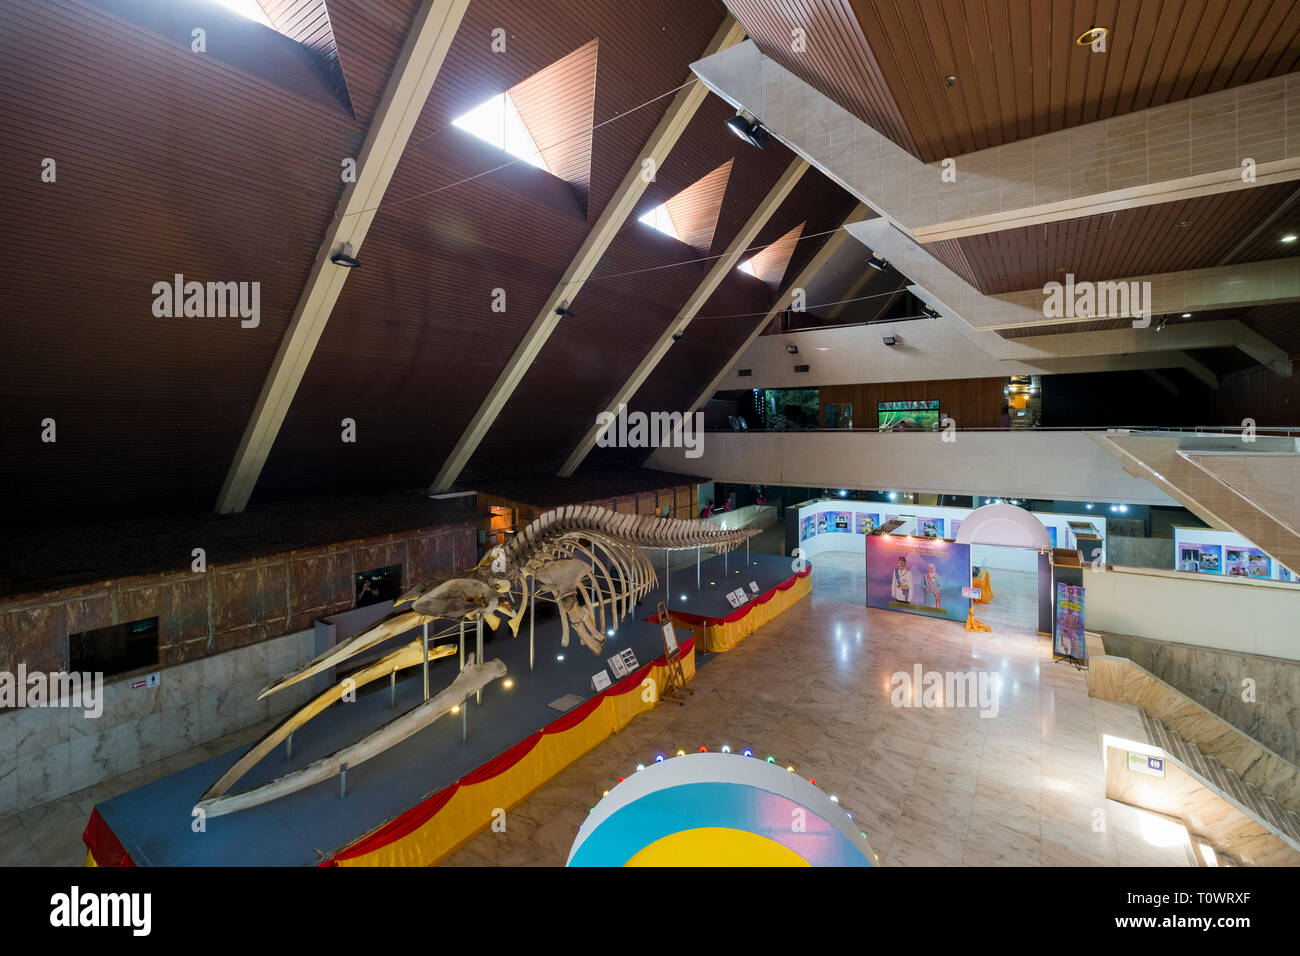 Exhibits at the Sabah State Museum in Kota Kinabalu, Sabah, Borneo, Malaysia. A giant white whale skeleton dominates the main interior space. - Stock Image